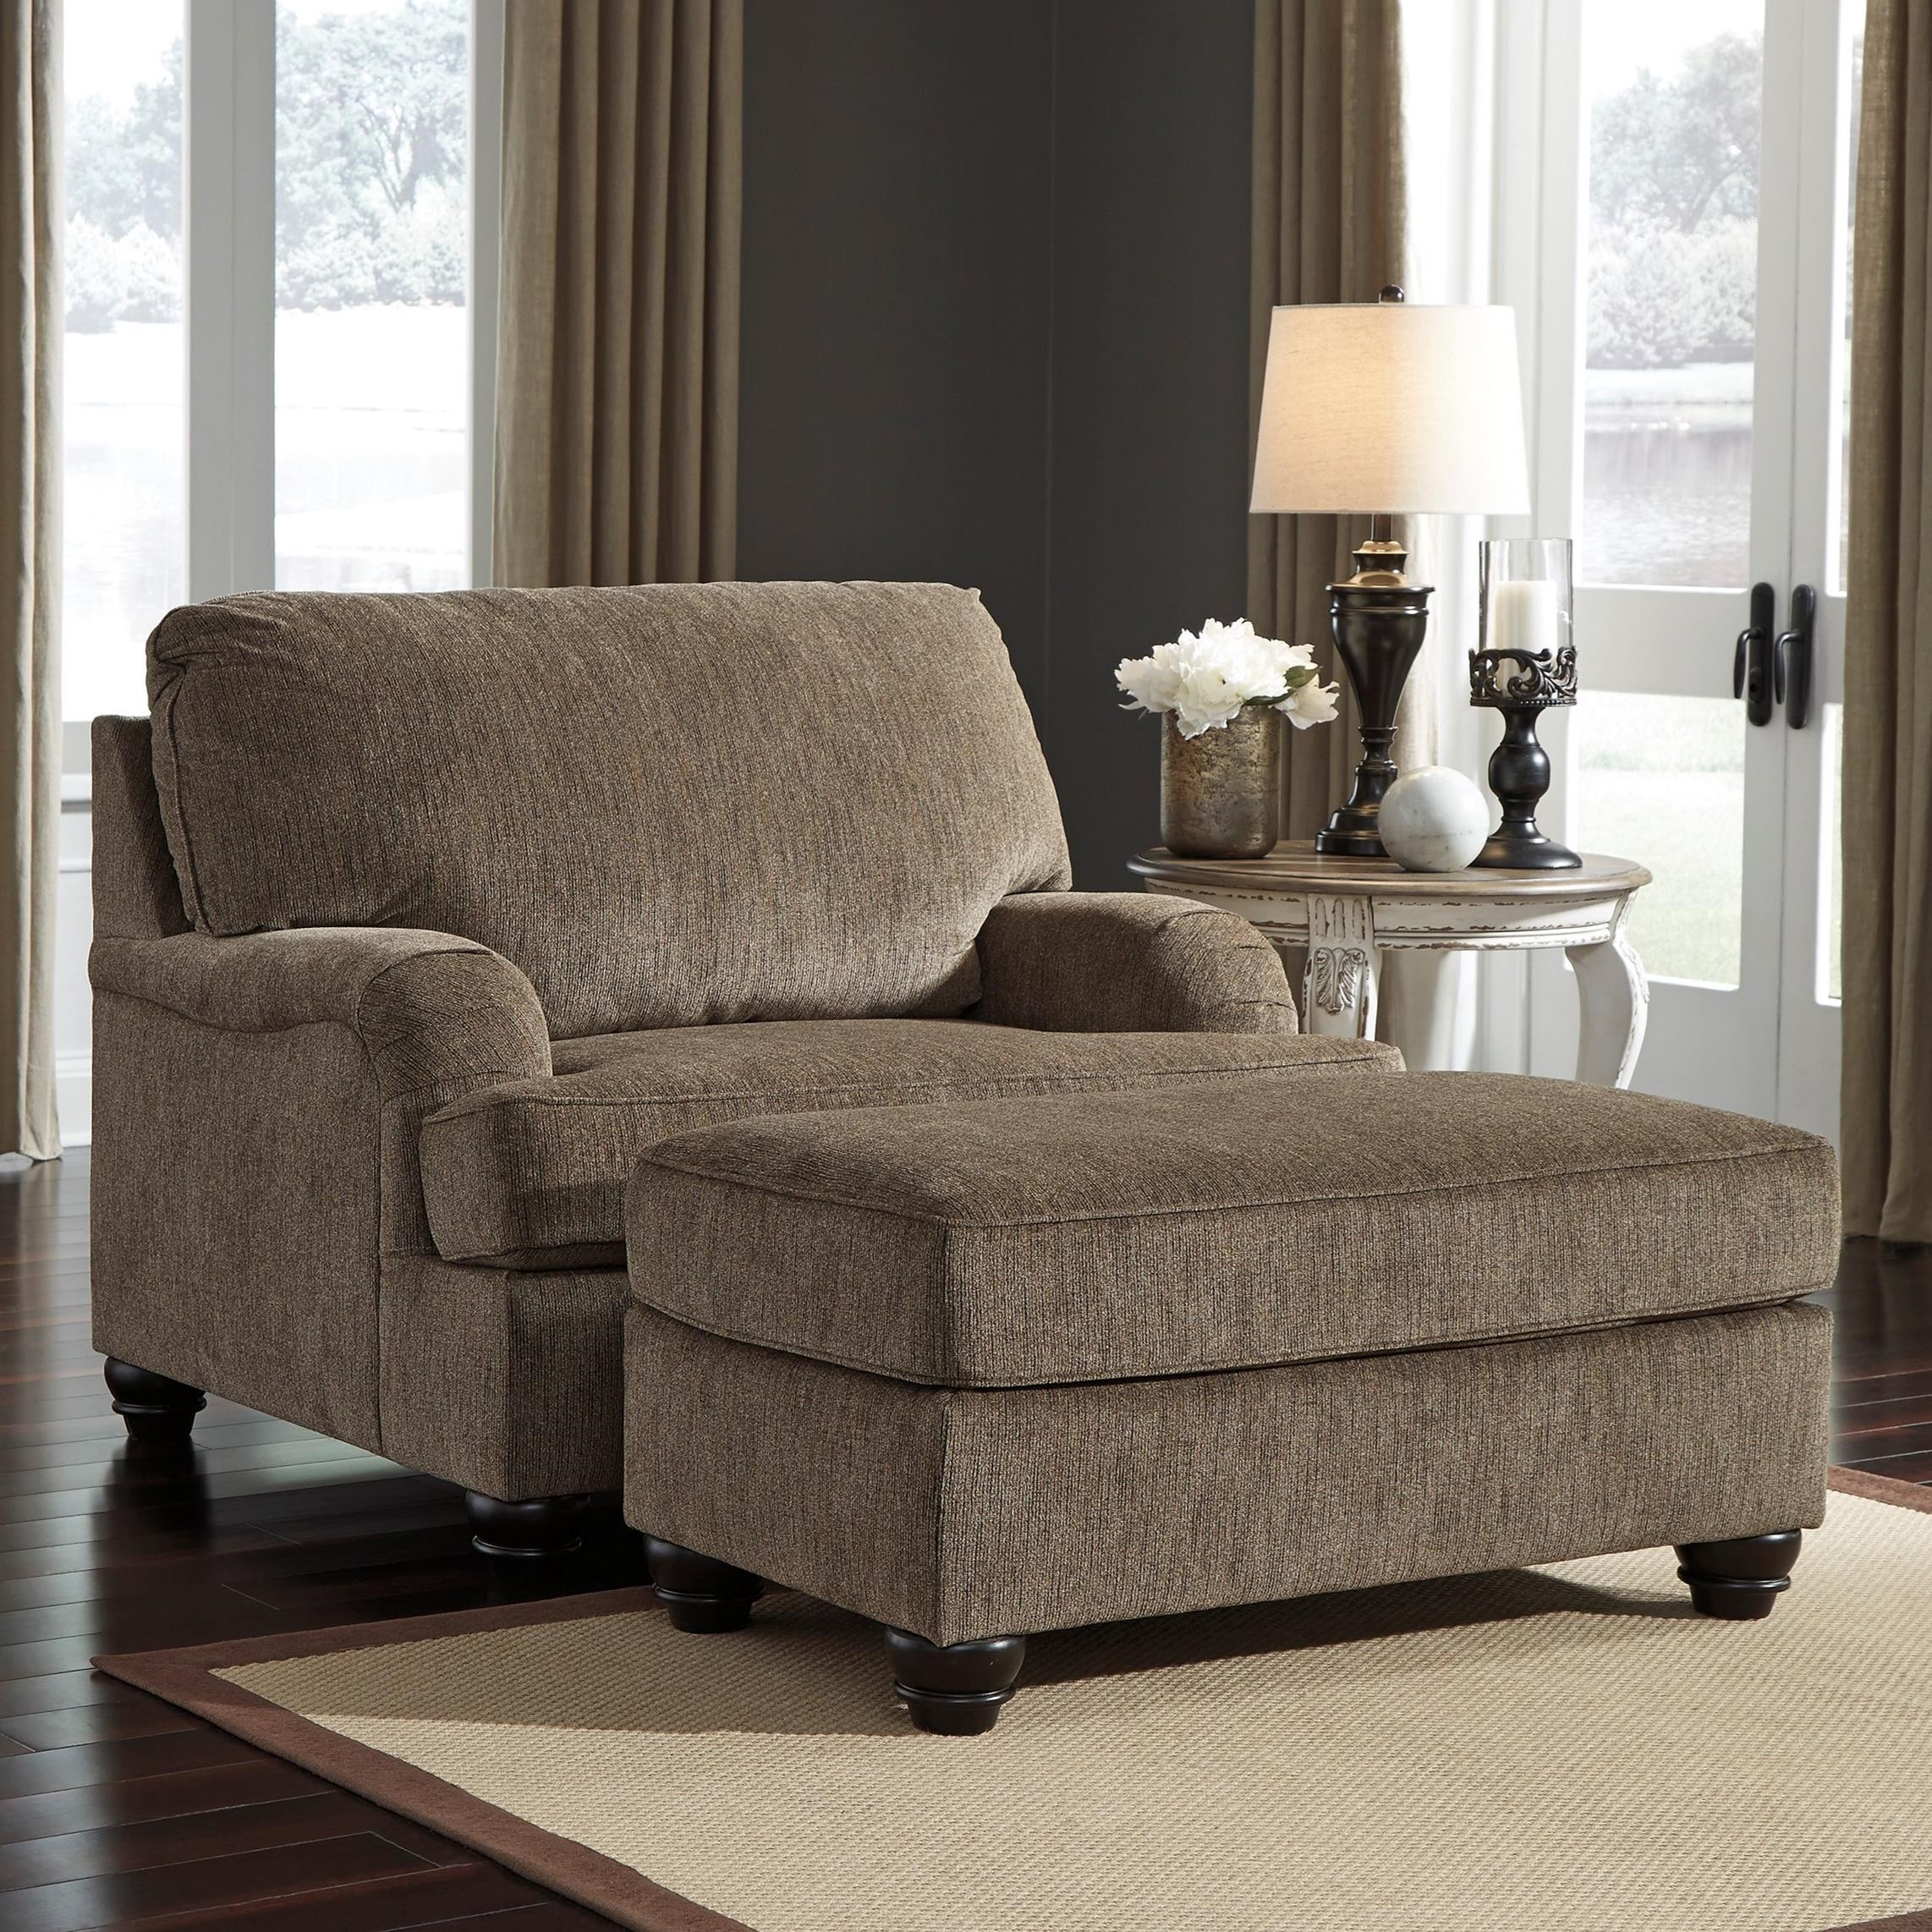 Braemar Chair and a Half with Ottoman by Benchcraft at Miller Waldrop Furniture and Decor